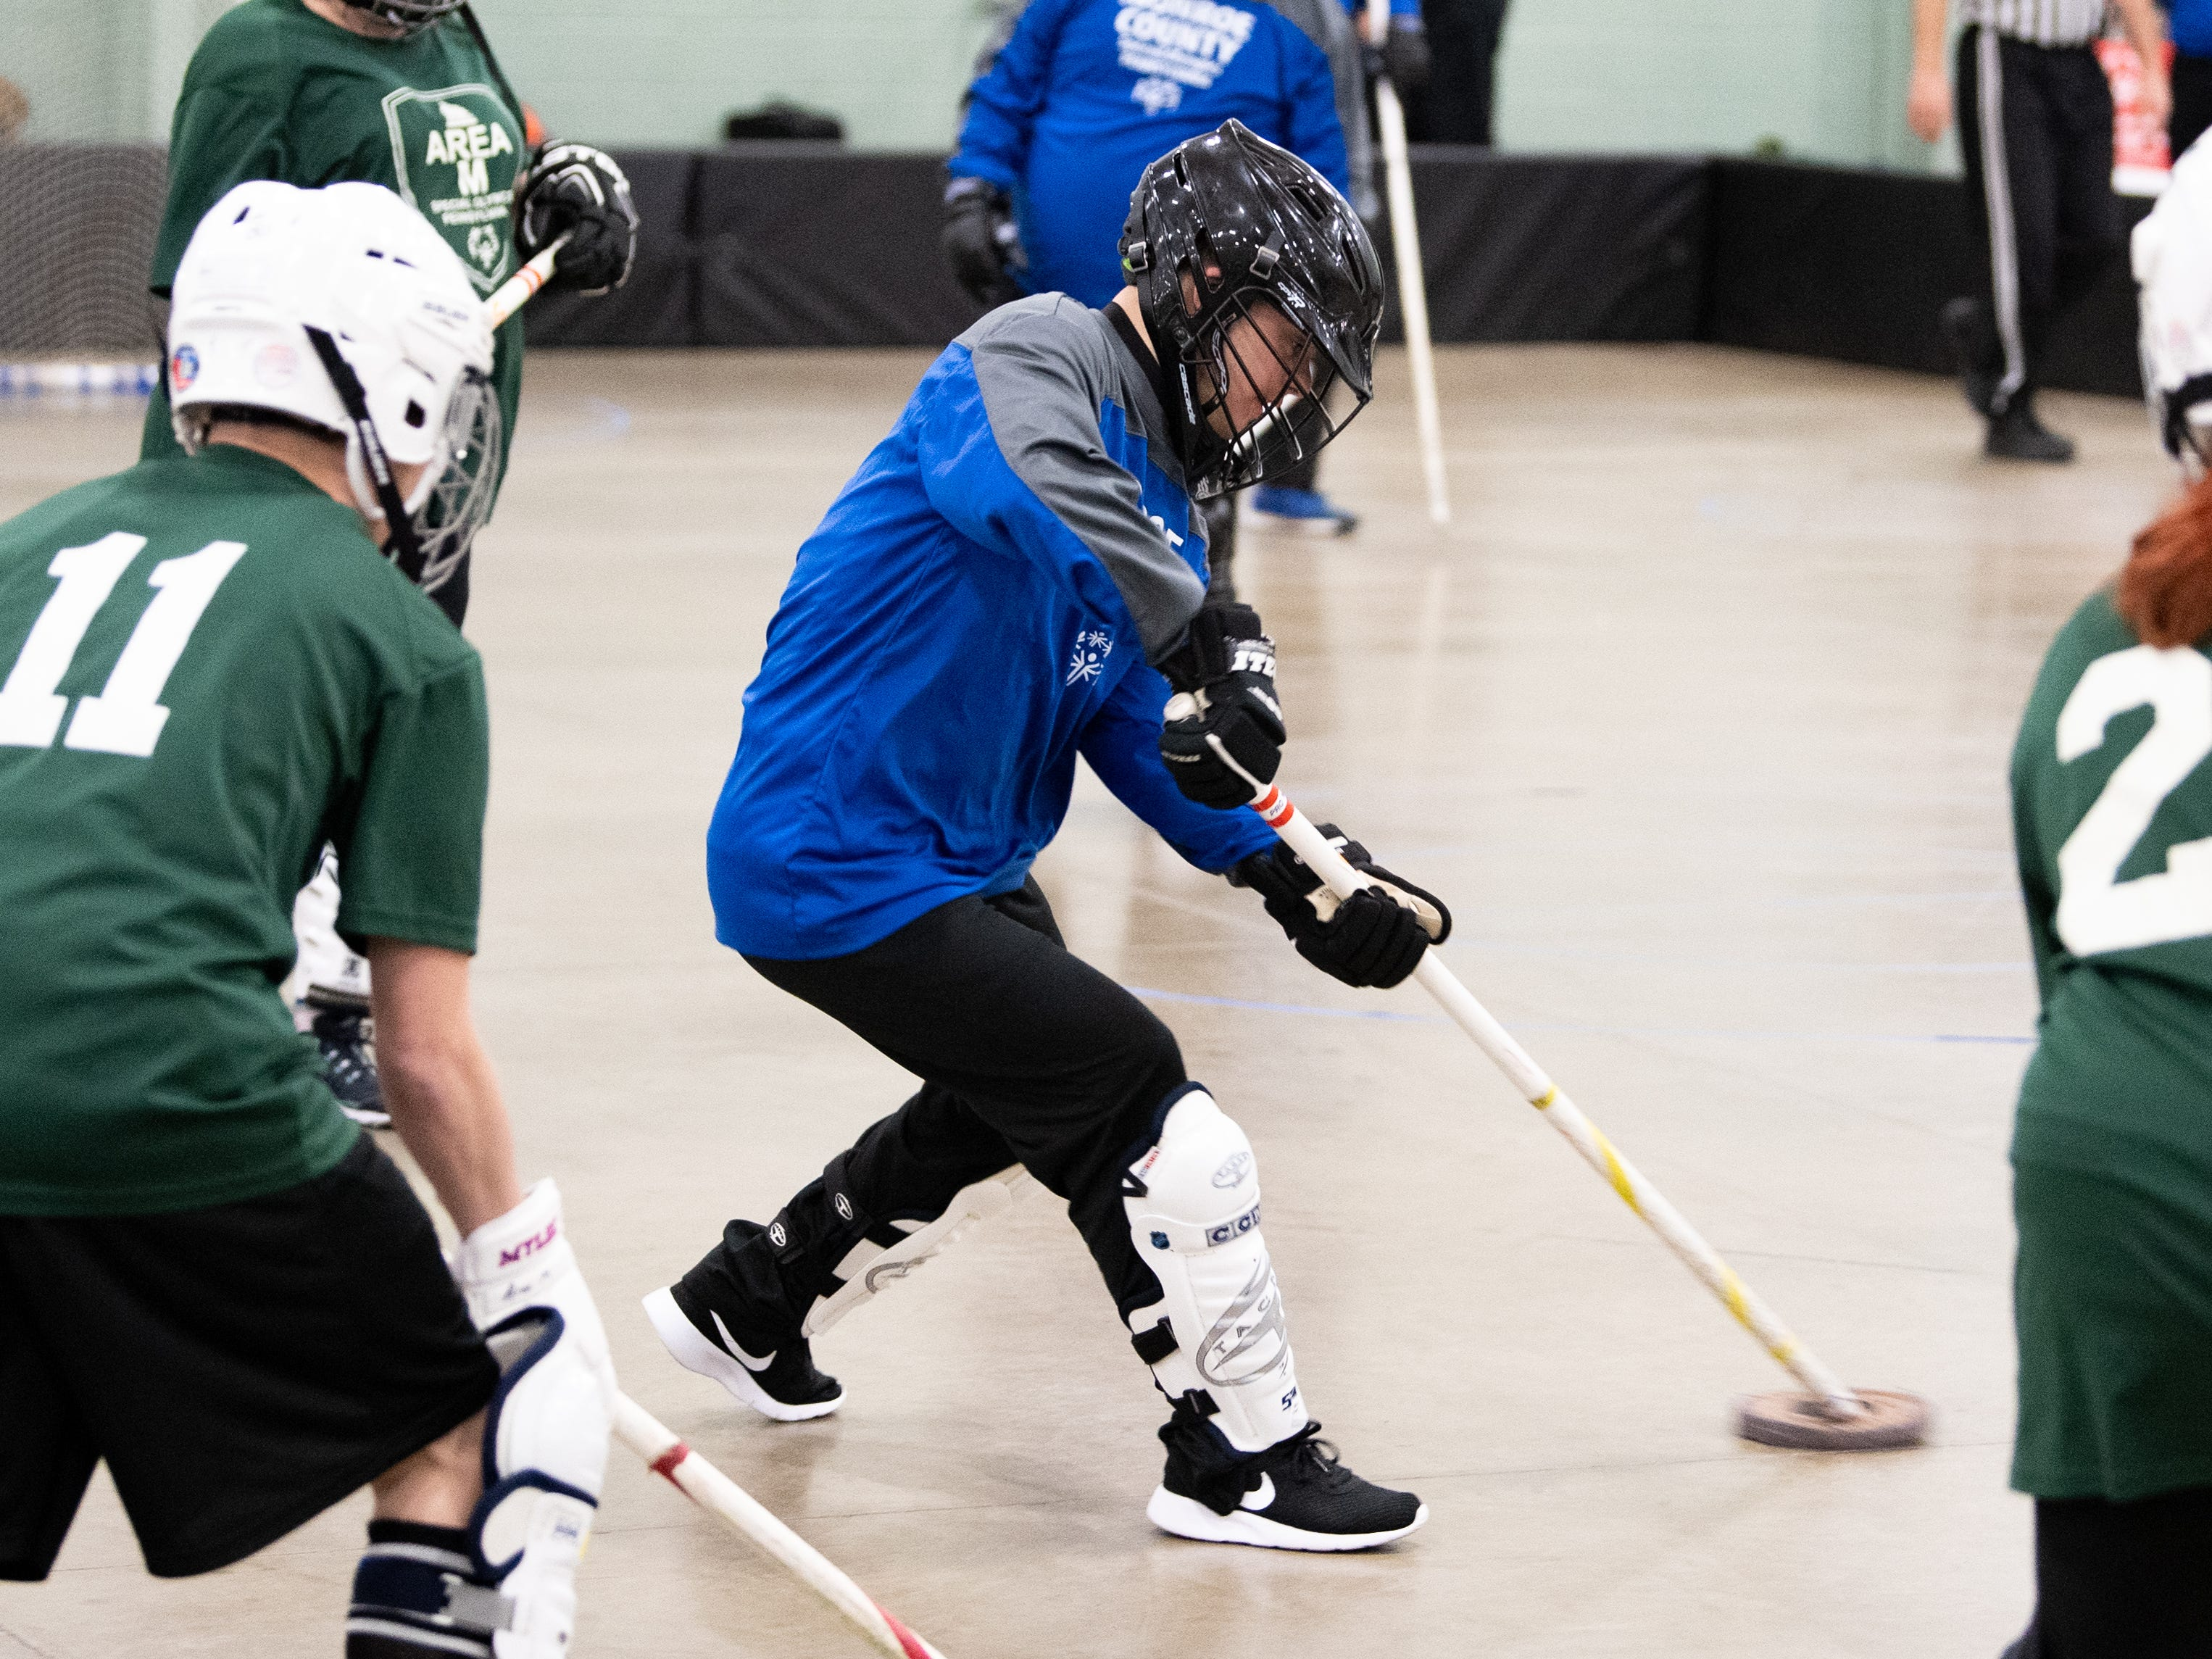 Floor hockey is very similar to ice hockey, except it can be played almost anywhere and the puck is bigger, March 2, 2019.